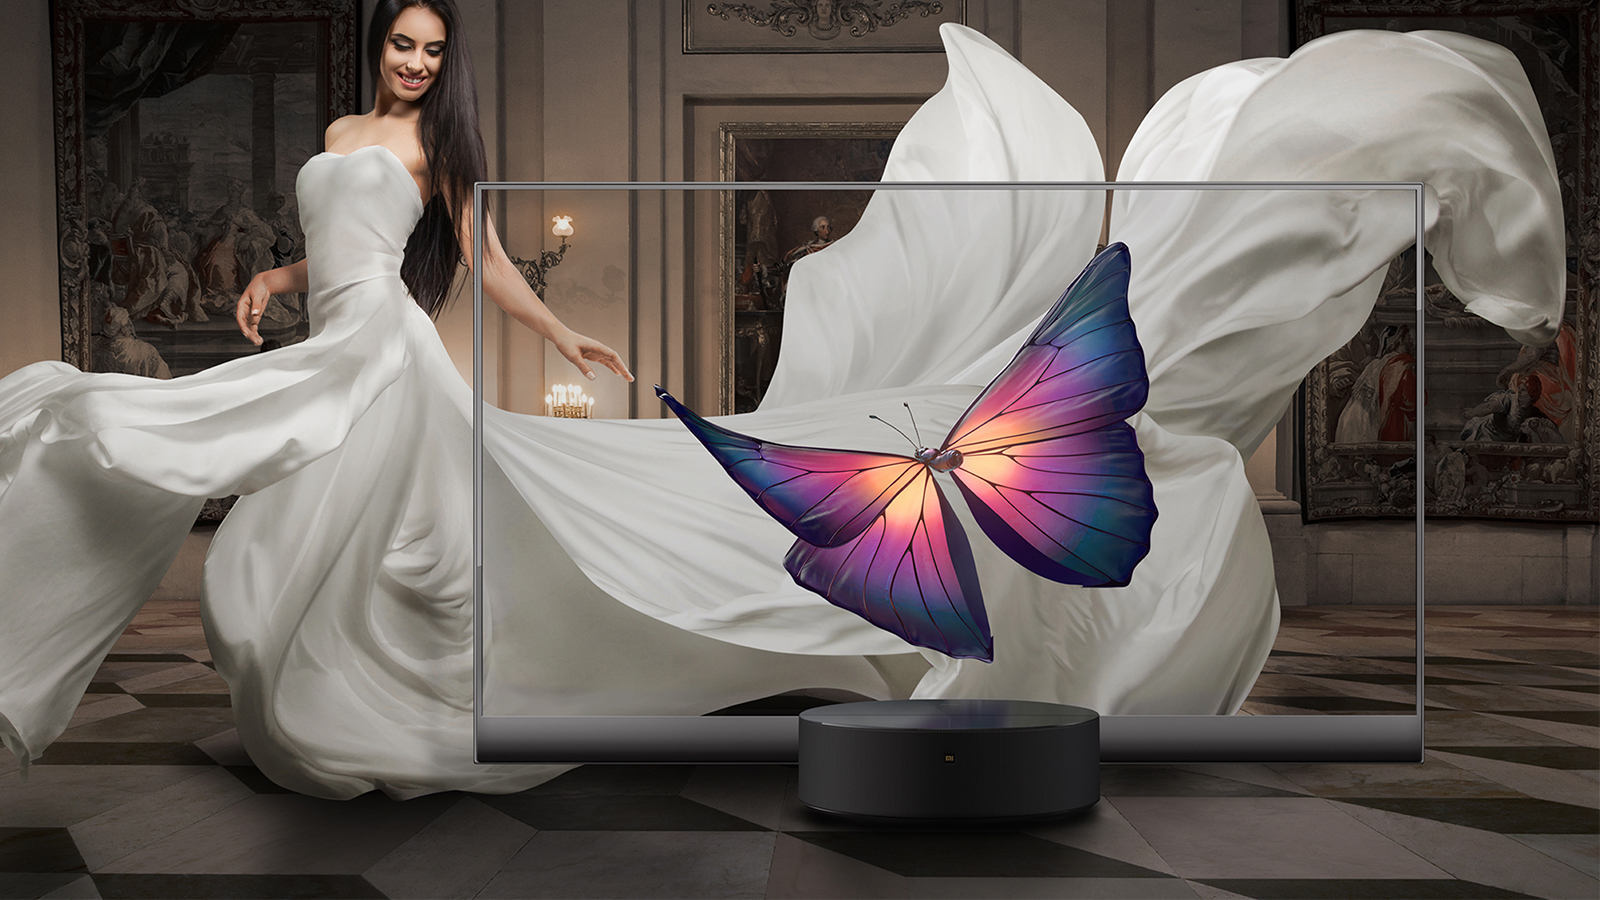 Mi tv lux oled transparent edition capa